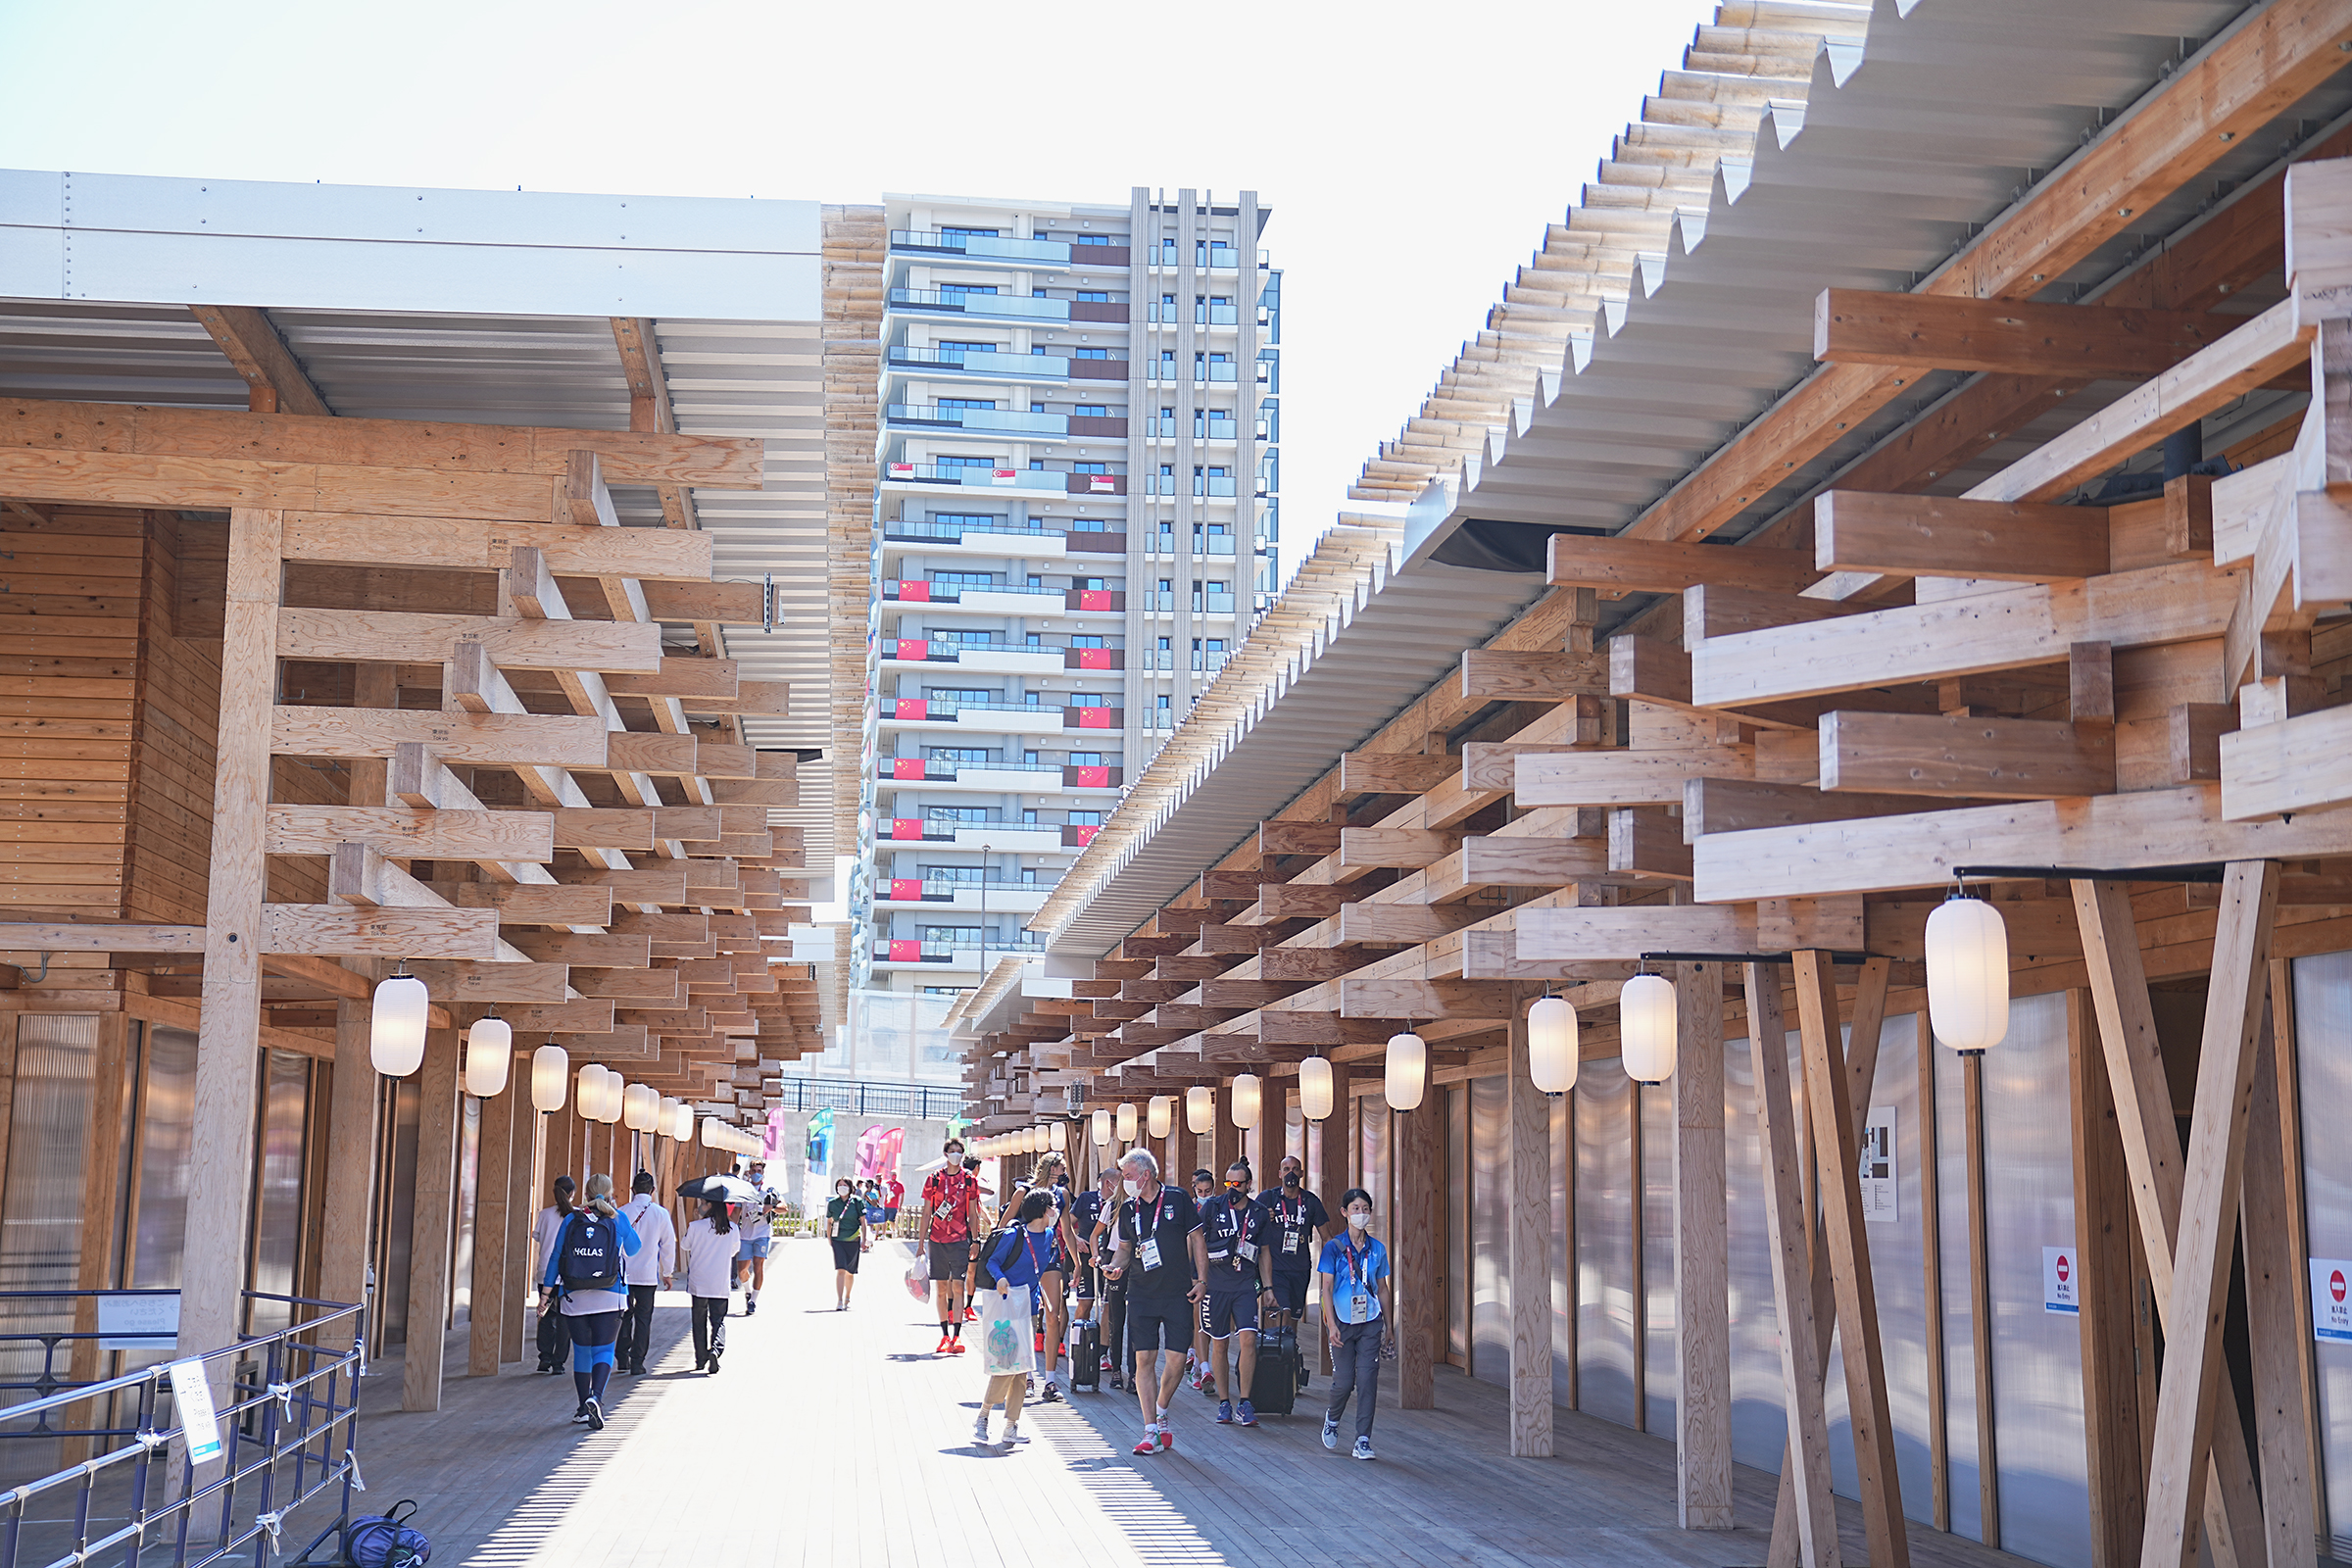 Athletes walk through the Tokyo Olympic Village on Wednesday, July 21.